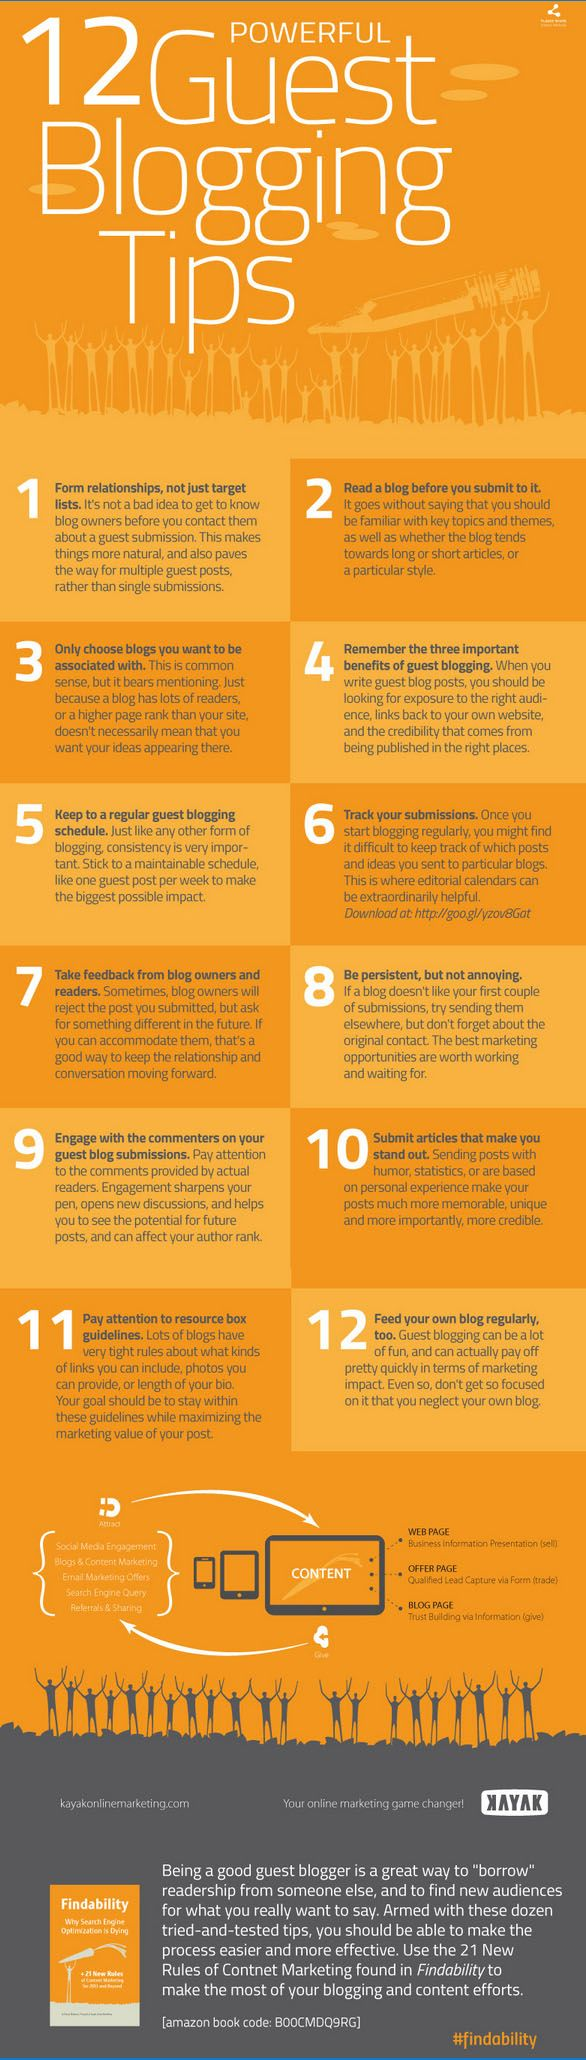 12 guest blogging tips to increase your blog traffic. #infographic #bloggingstrategies